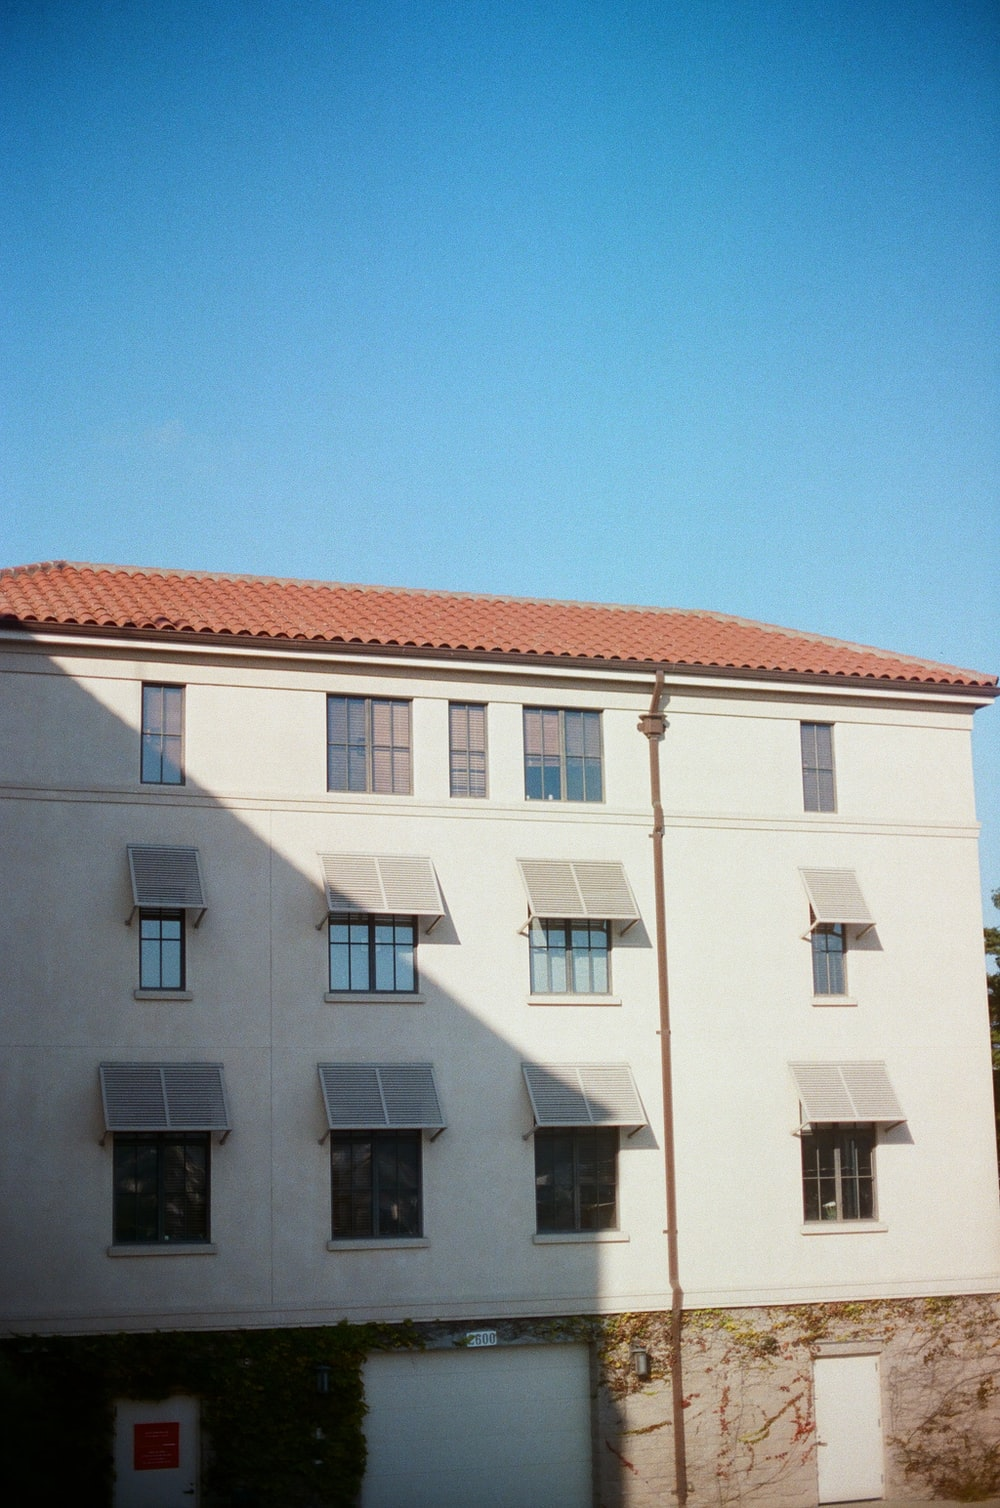 white and brown 4-storey building